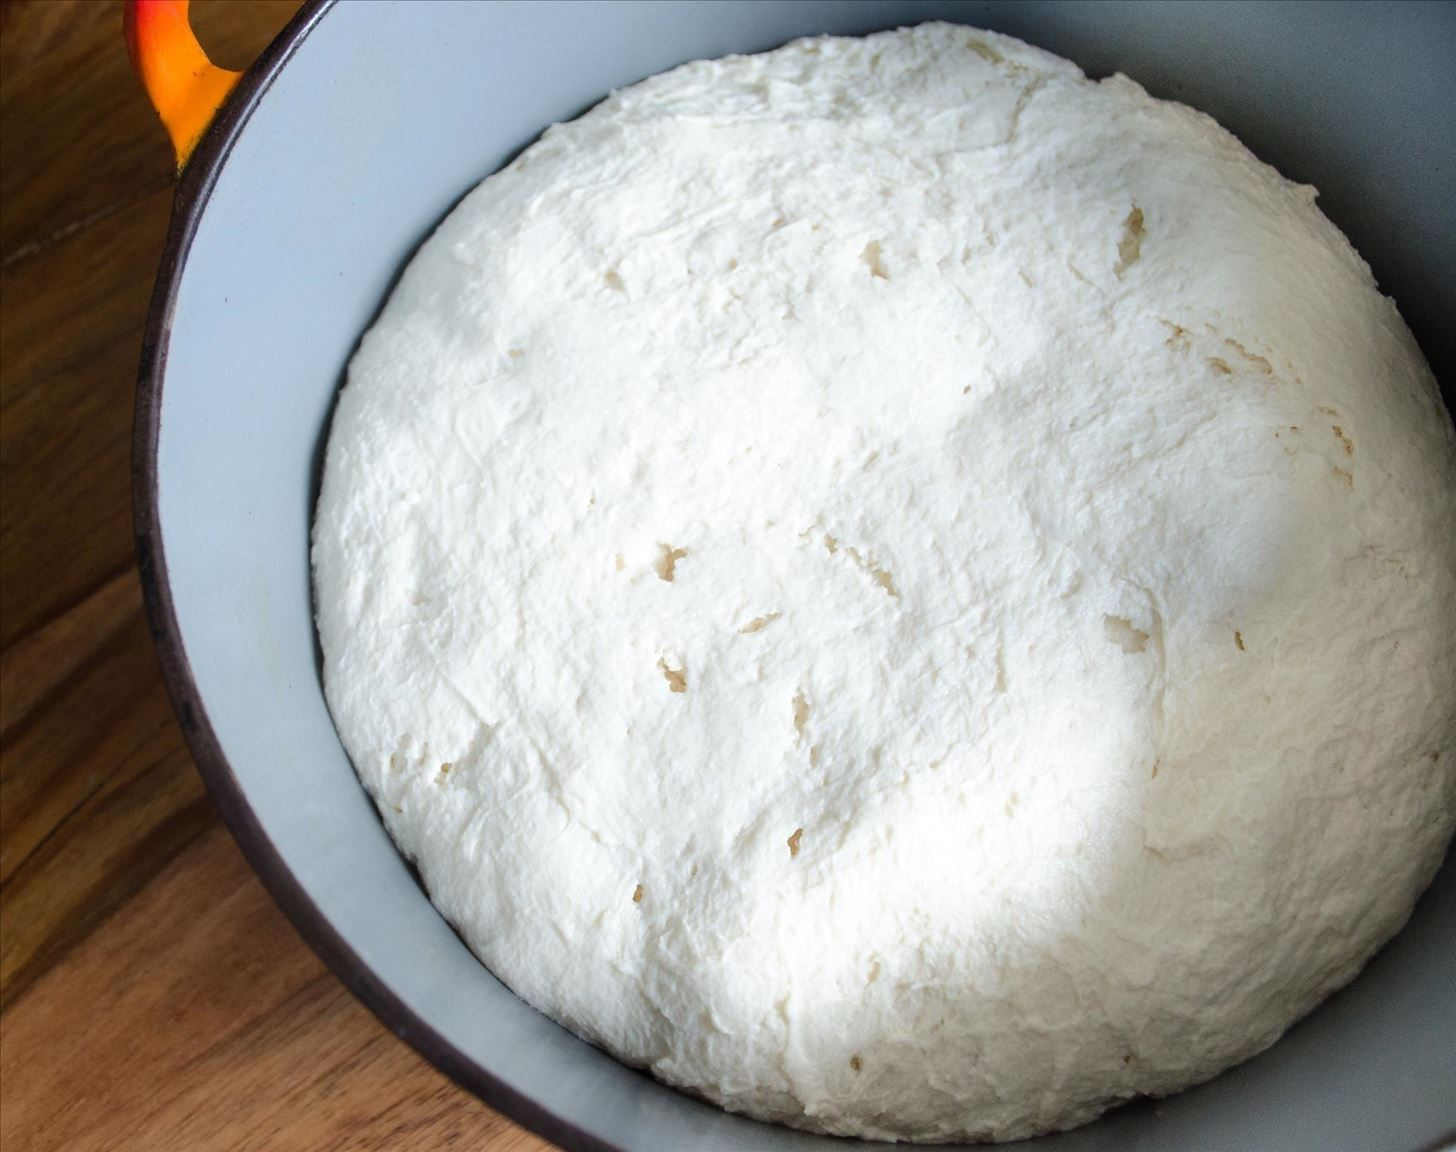 This Yogurt Trick Will Help You Get Professional-Tasting Sourdough Bread at Home